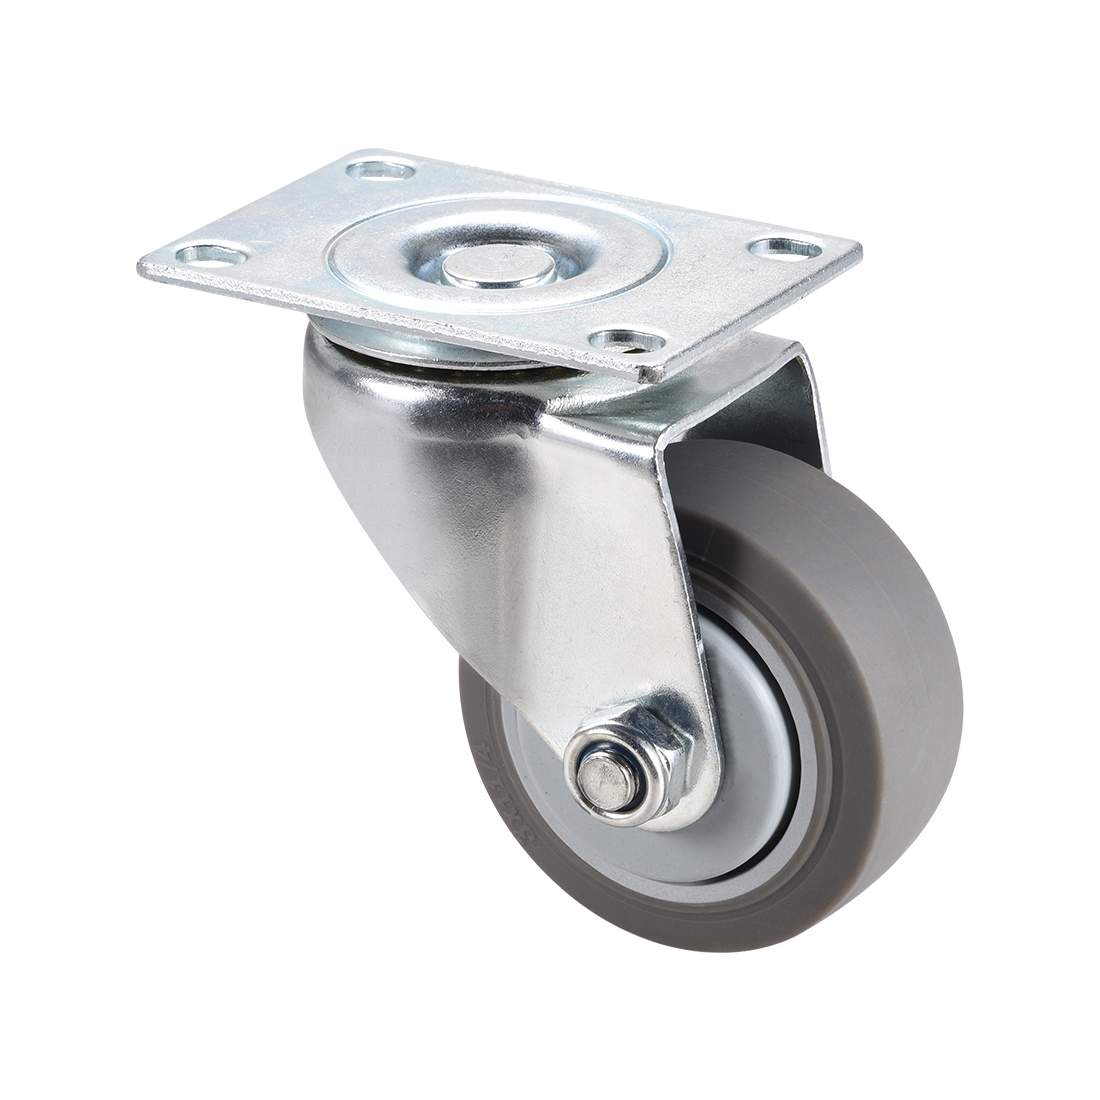 Swivel Caster Wheels 3inch TPR Caster 360 Degree Rotate Top Plate 220lb Capacity